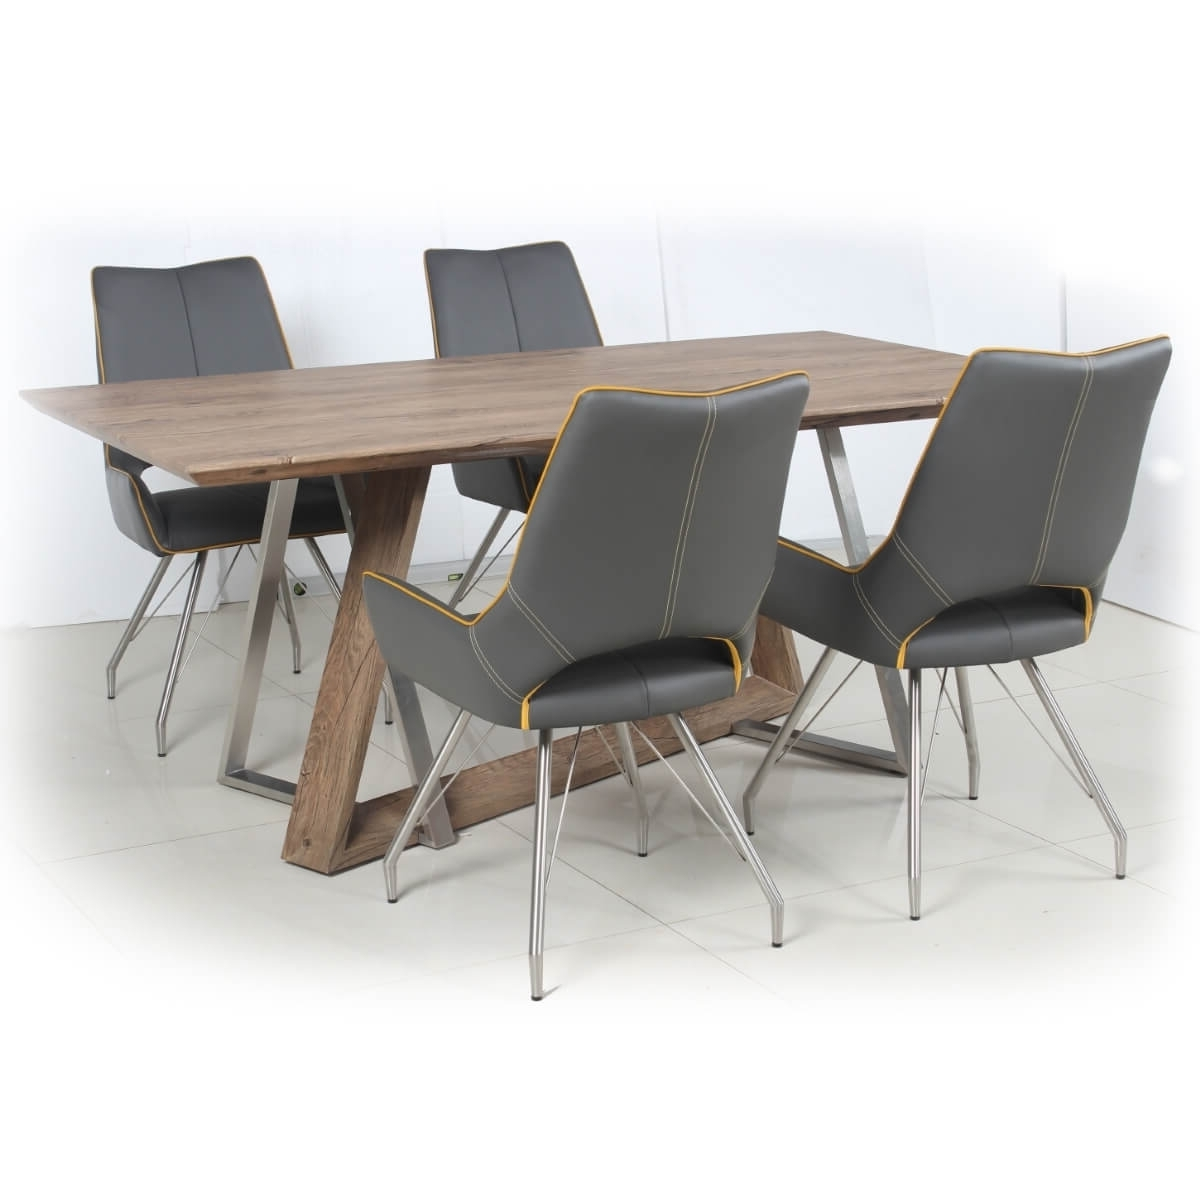 Grey Dining Chairs Within Well Known Dining Set – Industrial Style Wood Dining Table And 4 Grey Dining (View 23 of 25)